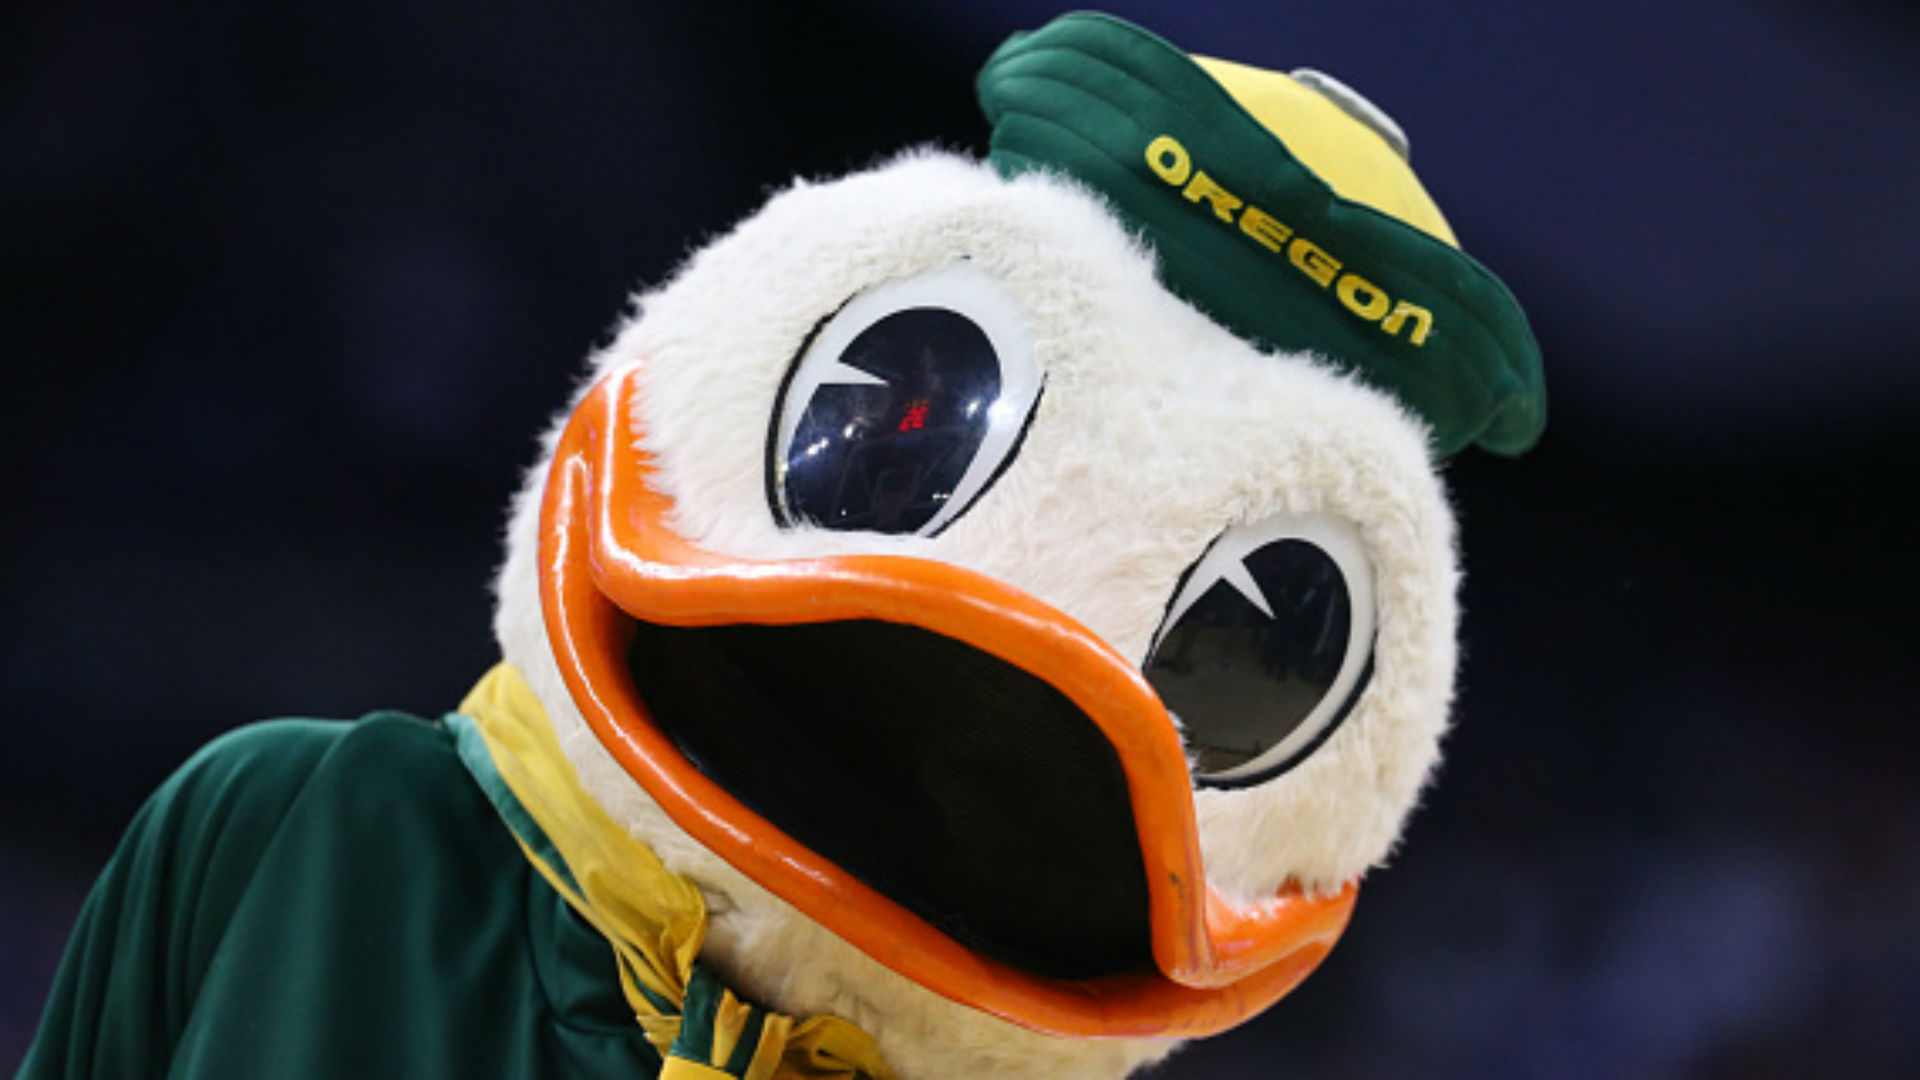 Oregon's mascot disses USC's Steve Sarkisian after dig at Ducks uniforms